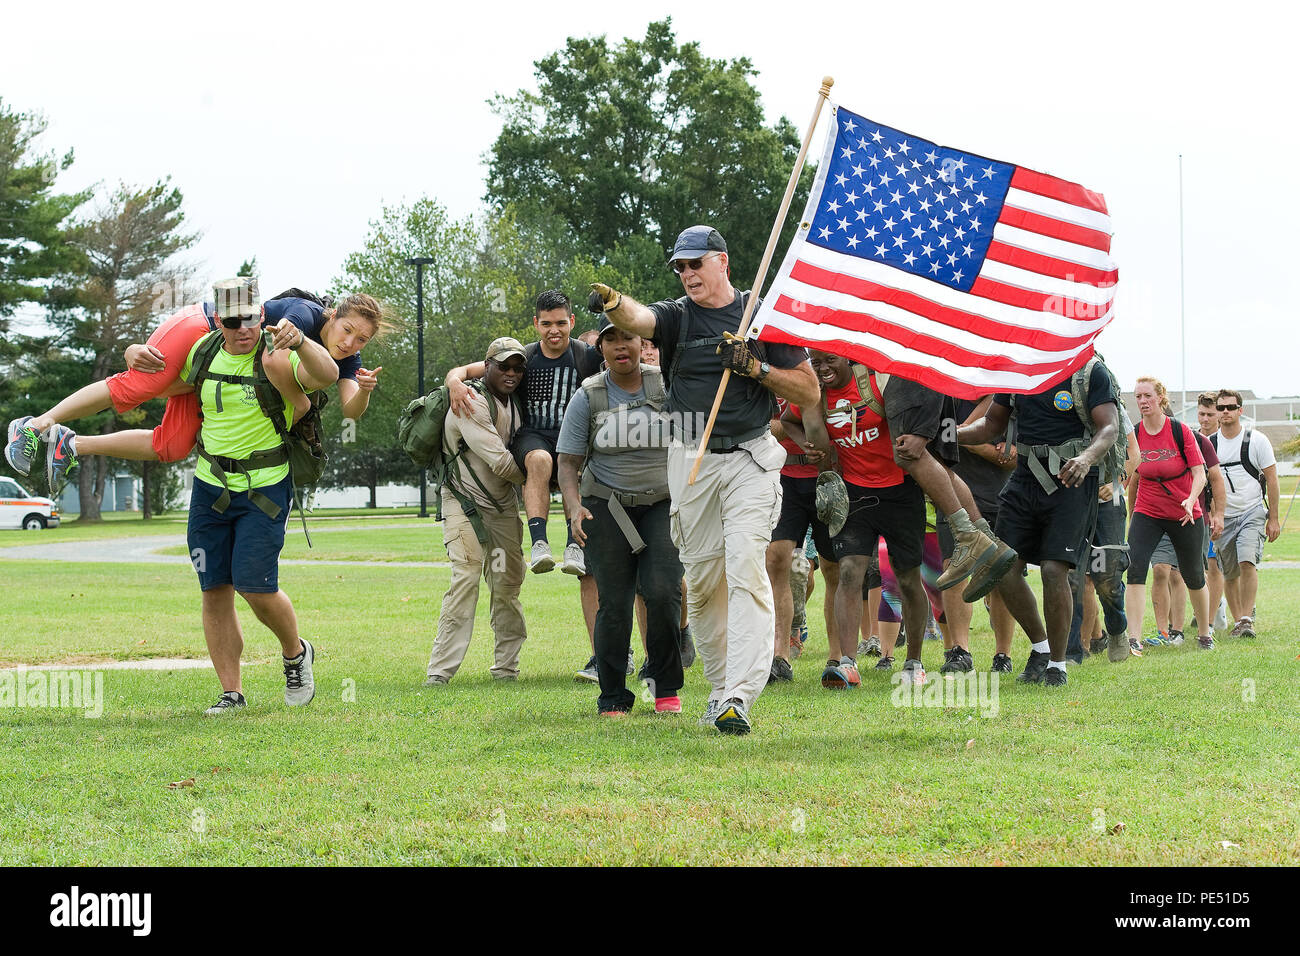 Master Sgt. Gary Porter, 512th Maintenance Squadron C-17 avionics intermediate maintenance section chief, carries the U.S. flag as he leads fellow GORUCK Light Team Dover members to a simulated extraction point Sept. 25, 2015, on Dover Air Force Base, Del. During the five-hour-long challenge led by a former U.S. Marine Corps reconnaissance member, participants completed numerous physical challenges along a 7.8-mile course and learned to overcome adversity by working as a team. (U.S. Air Force photo/Roland Balik) - Stock Image